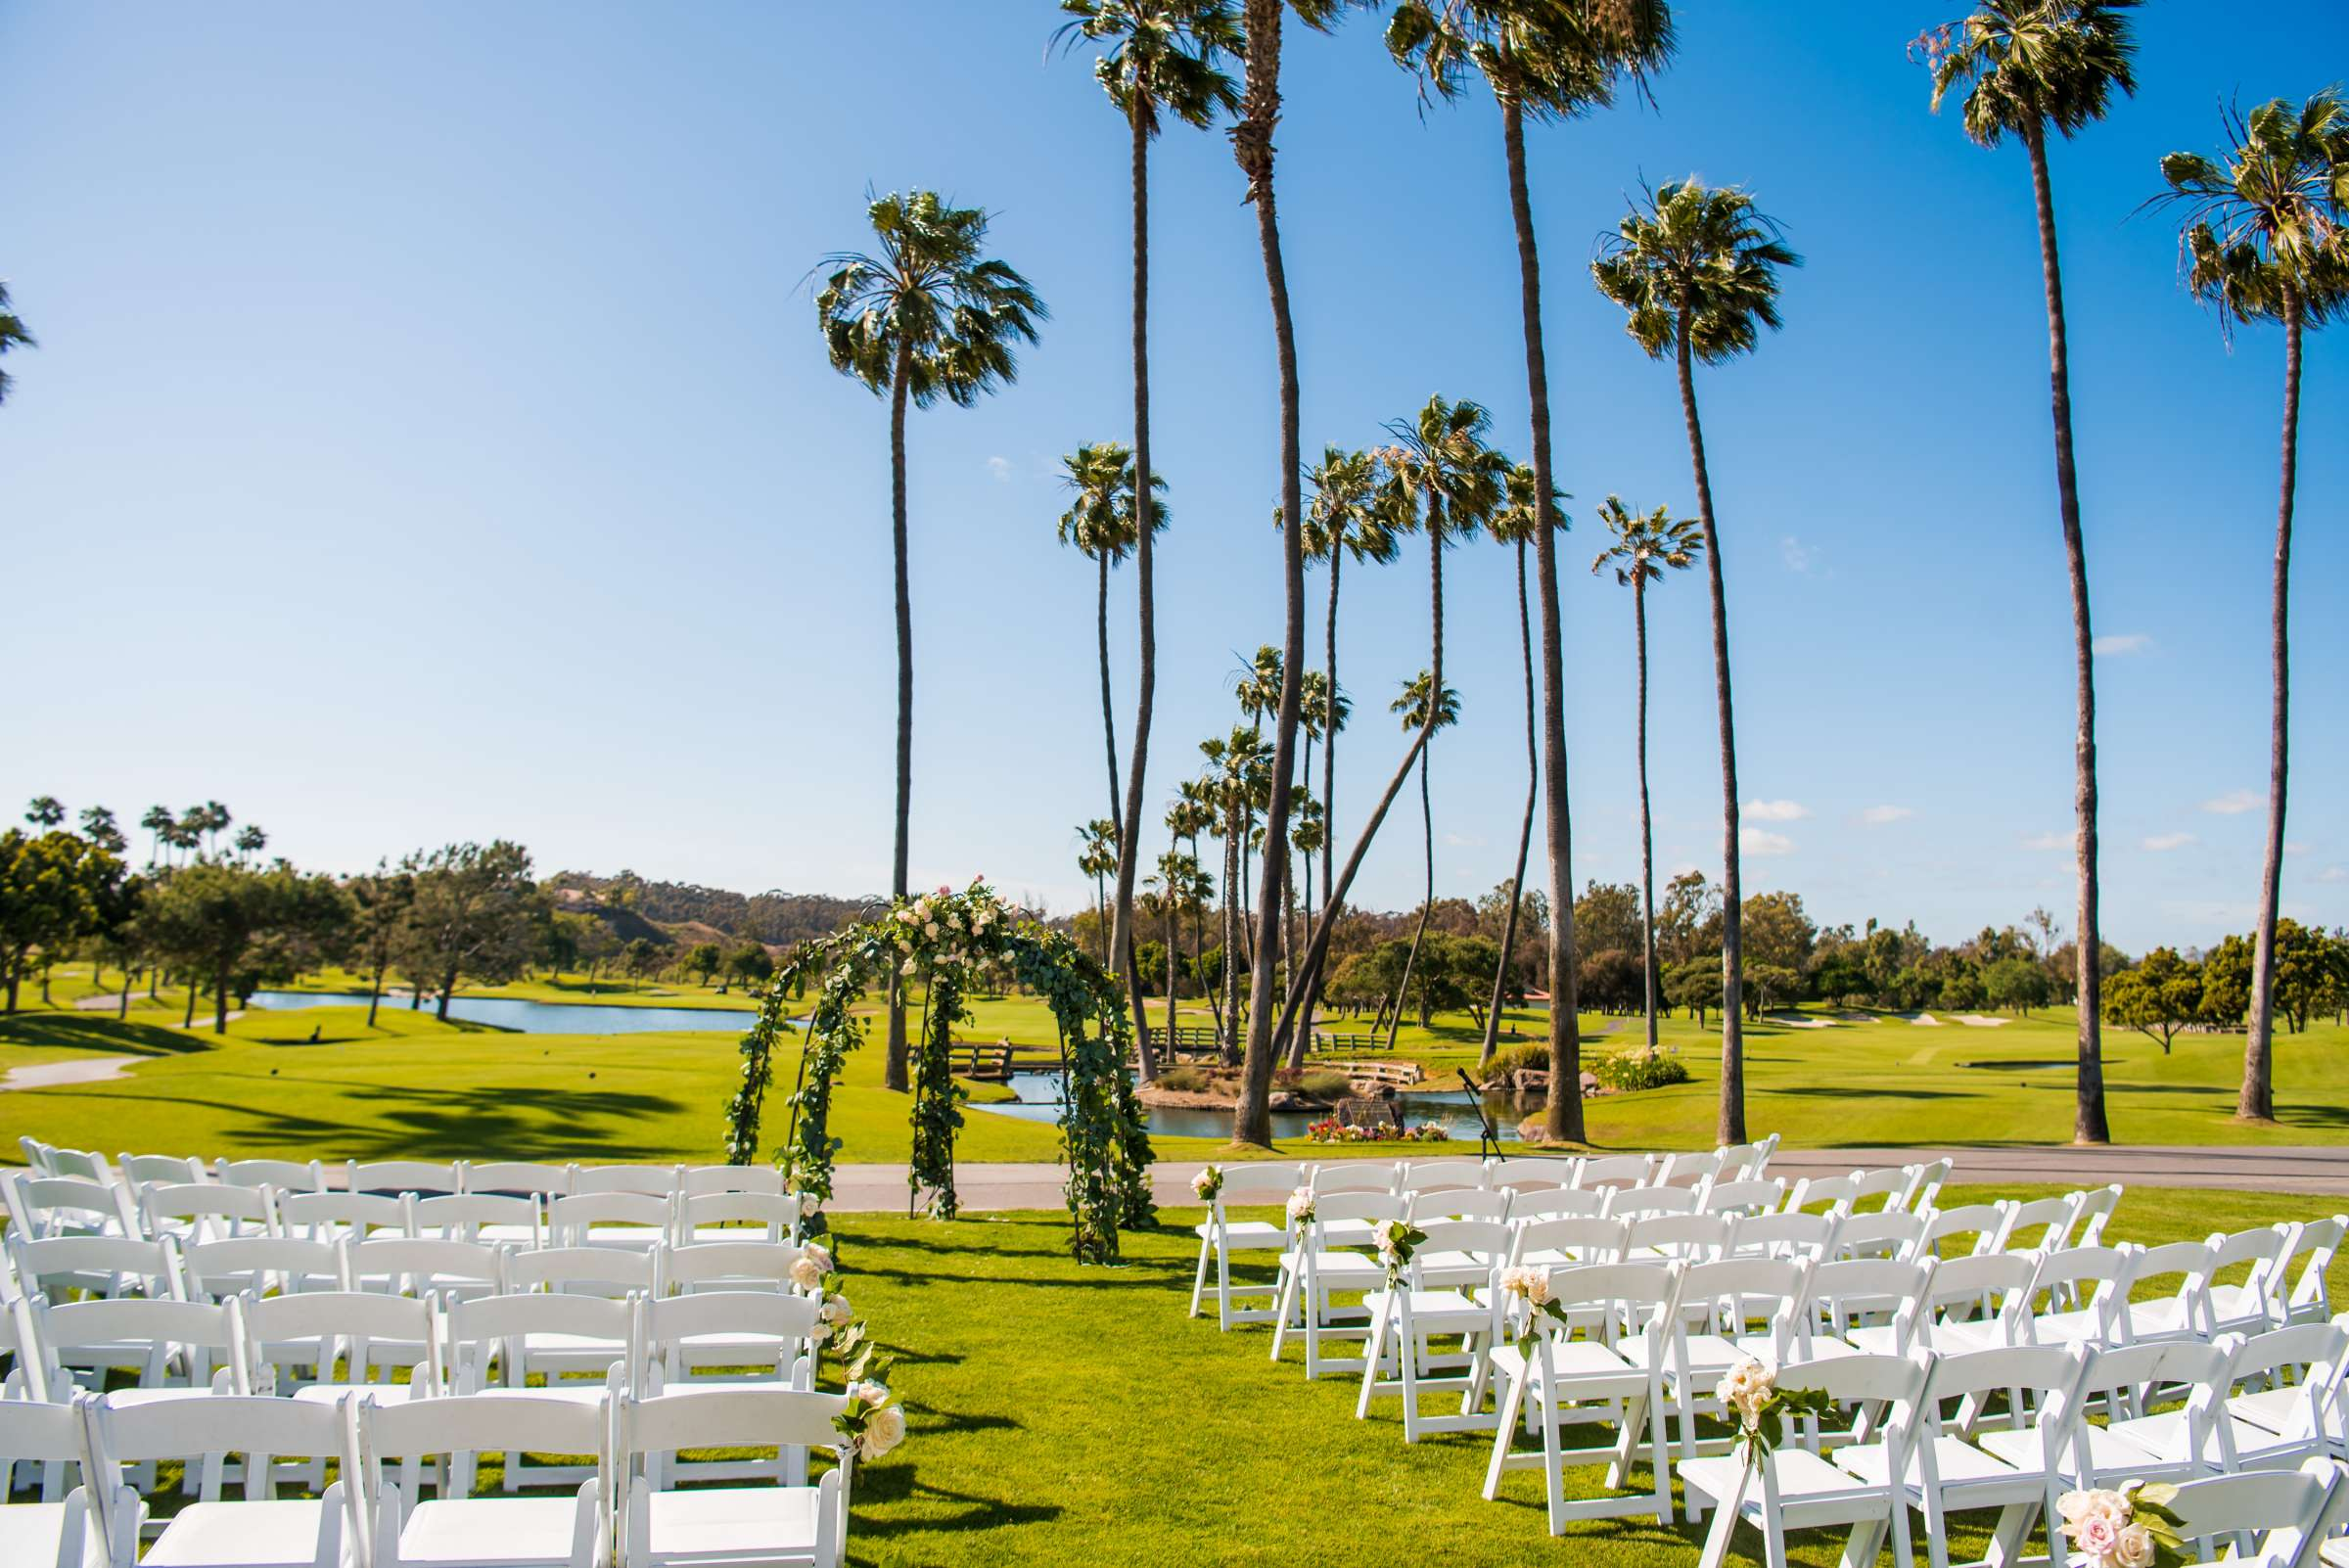 Fairbanks Ranch Country Club Wedding, Sarah and Daniel Wedding Photo #87 by True Photography